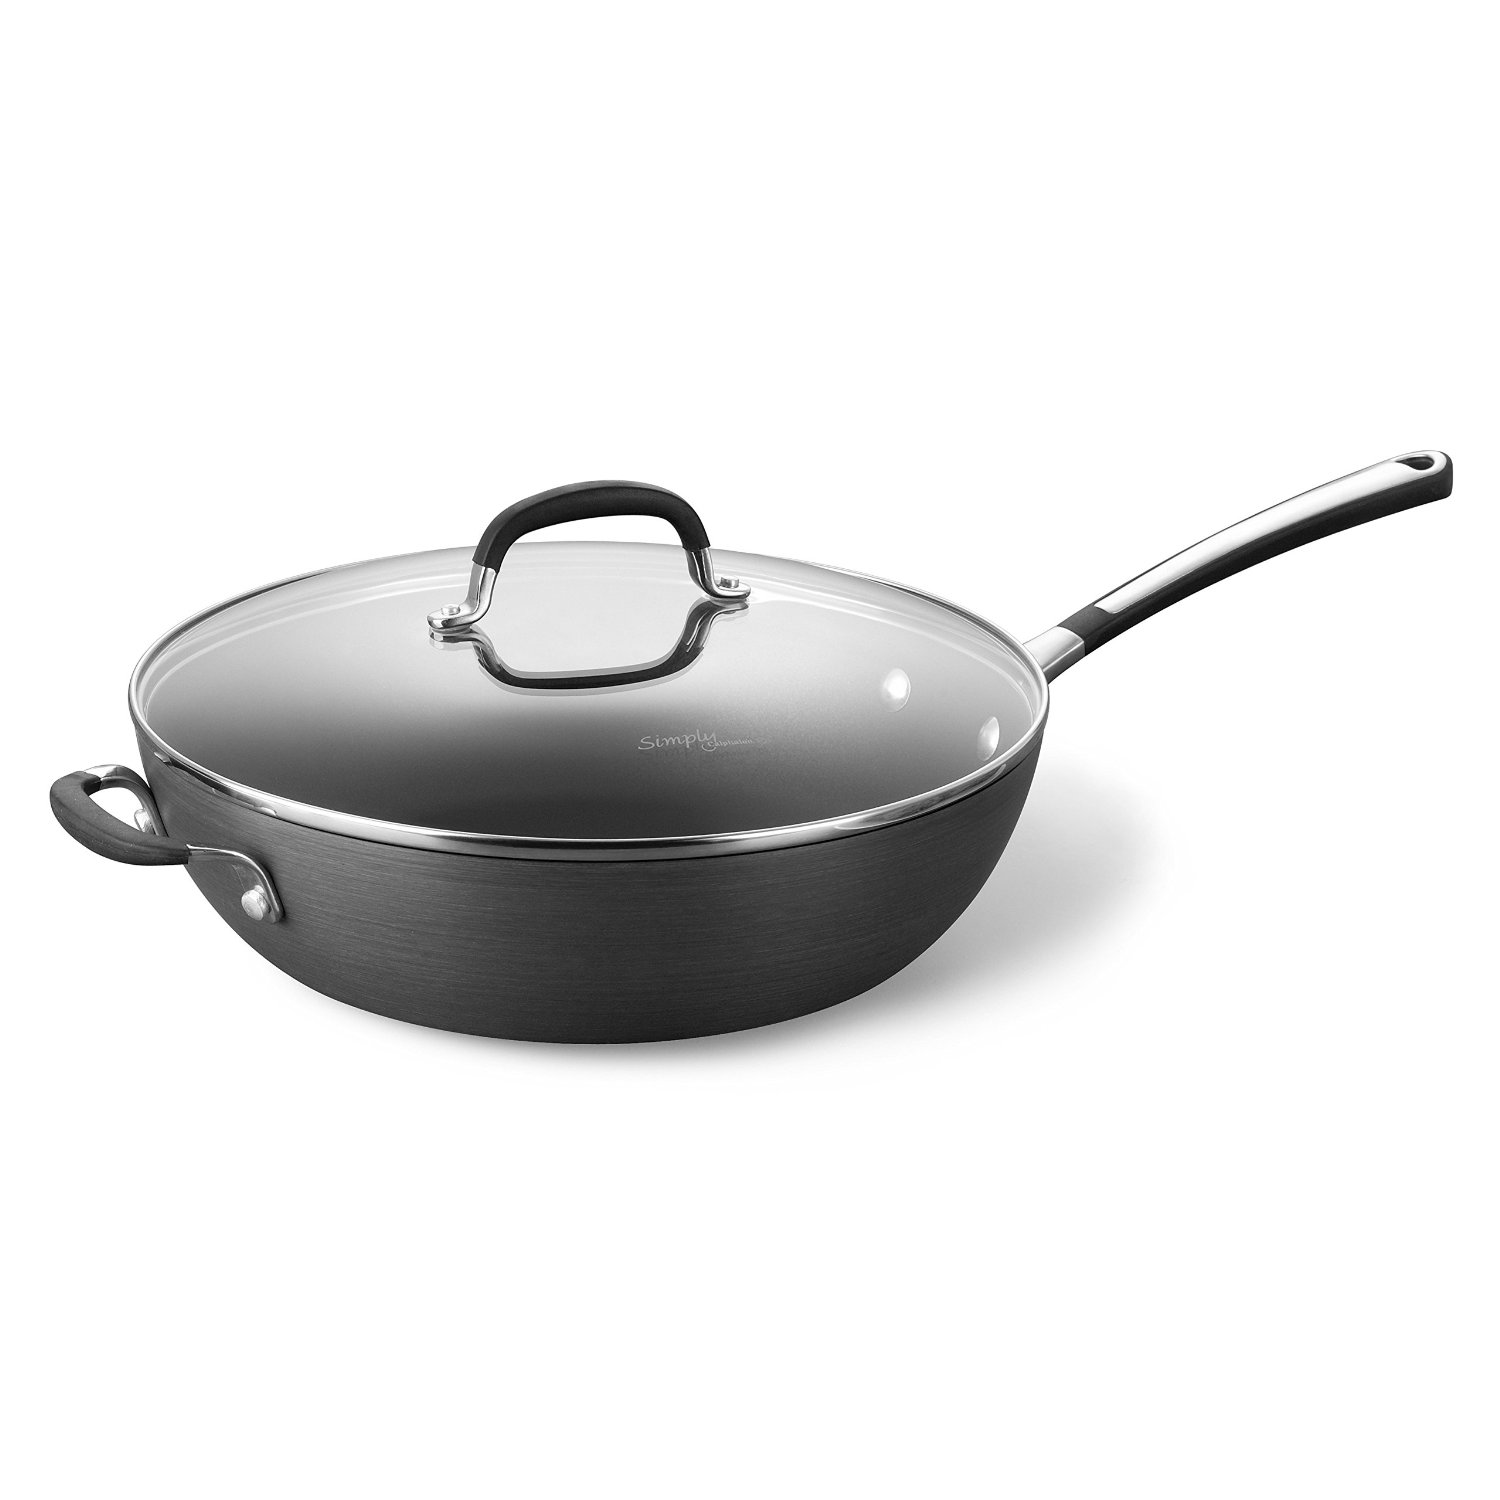 Calphalon Cookware Nonstick 12